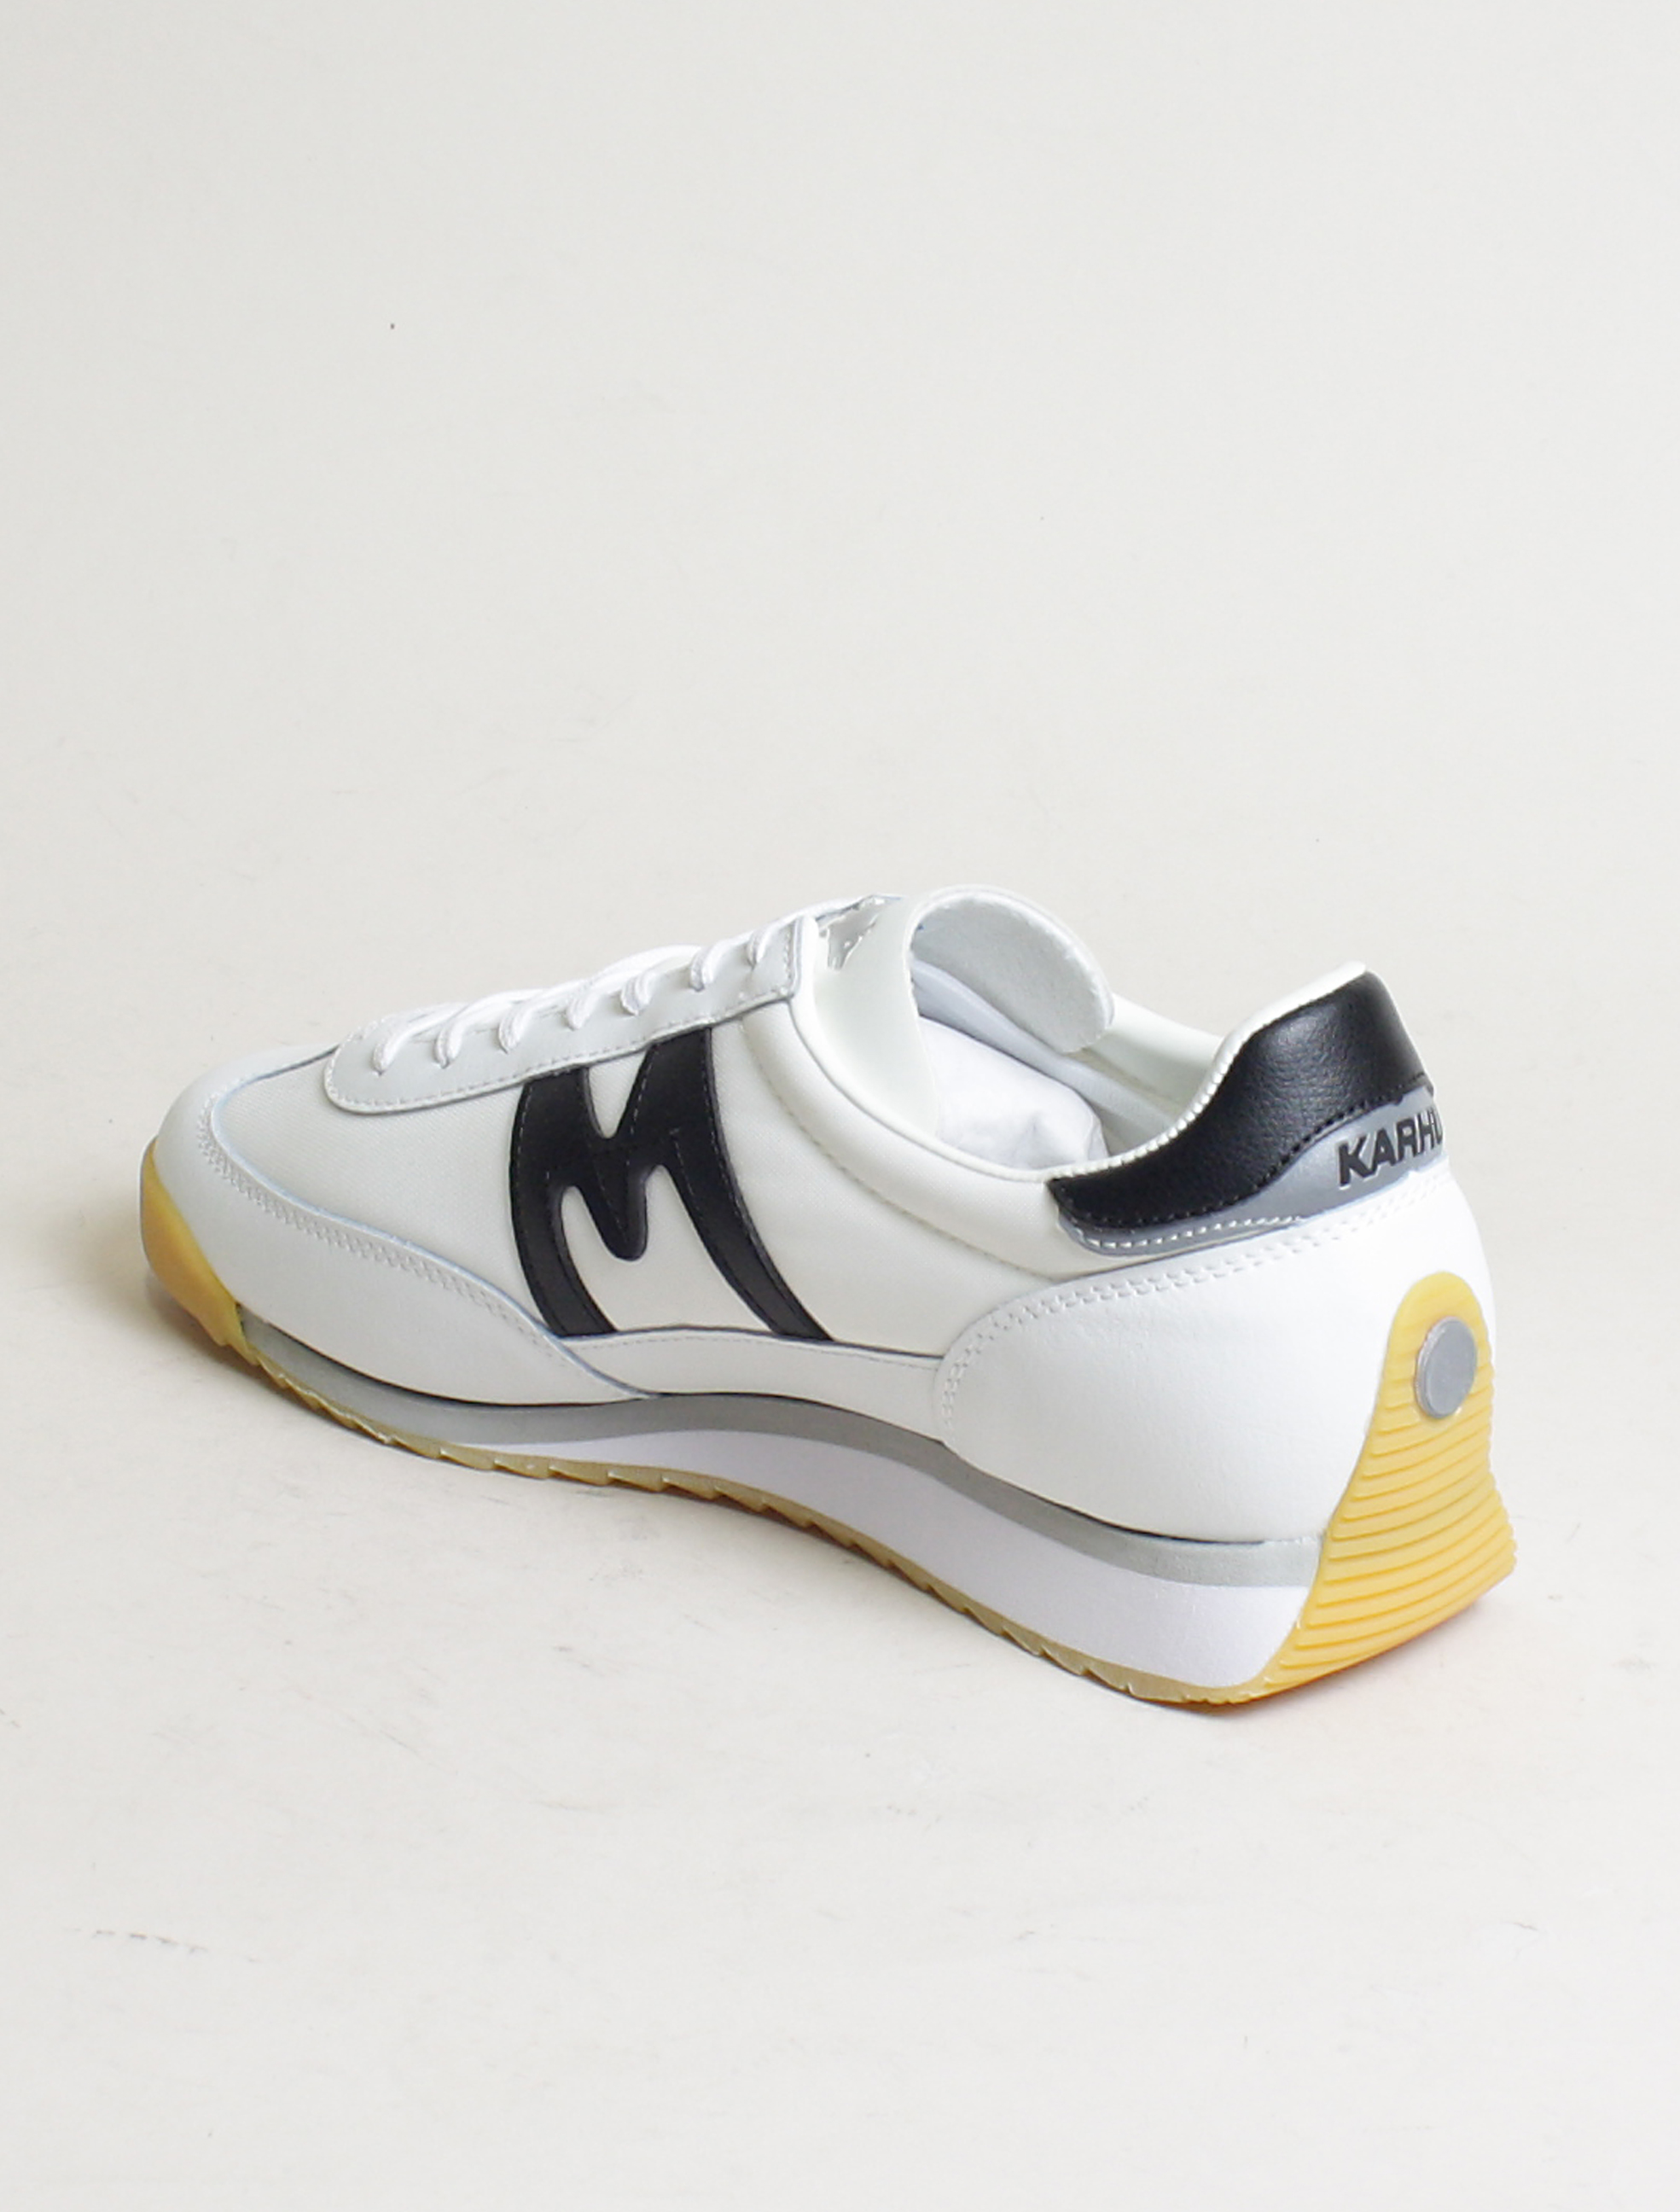 Karhu sneakers Championair white black laterale